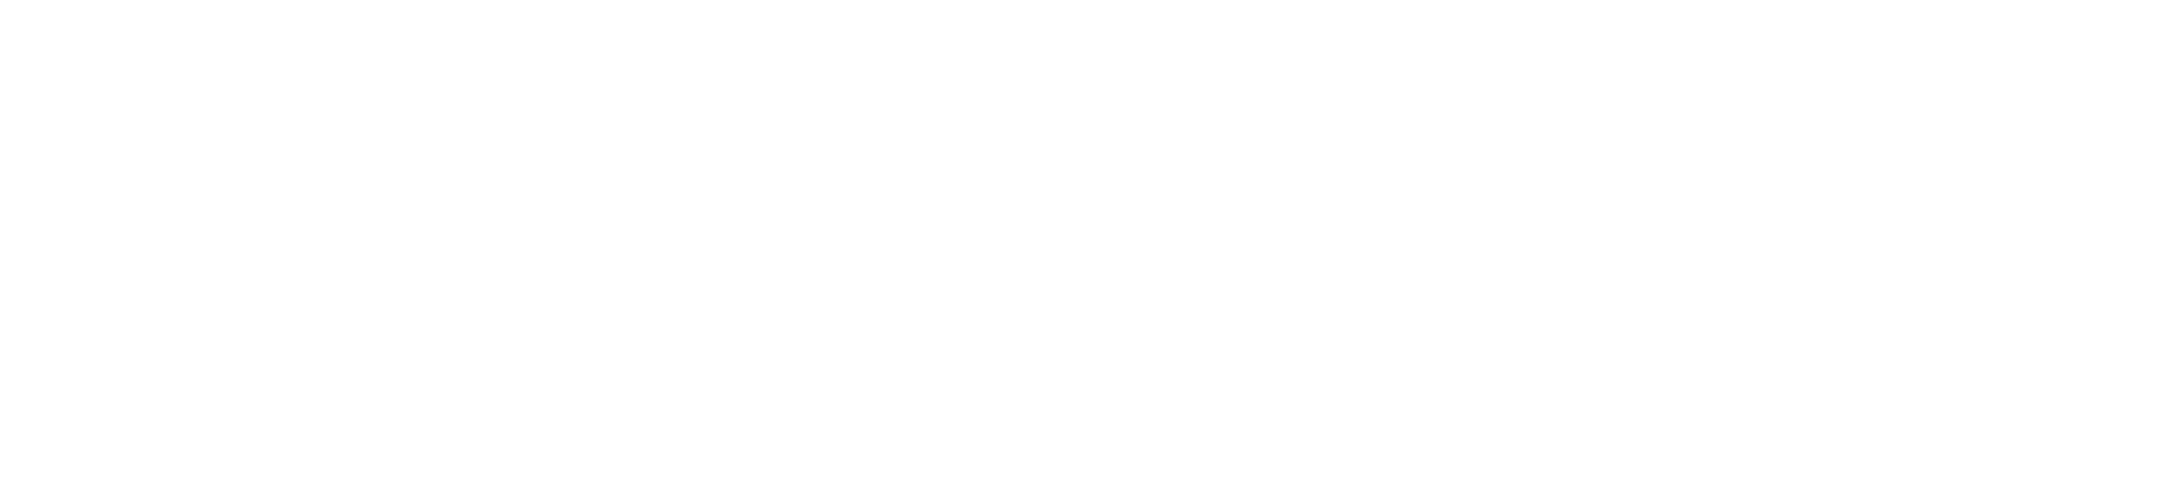 2019 Prodealer Industry Summit